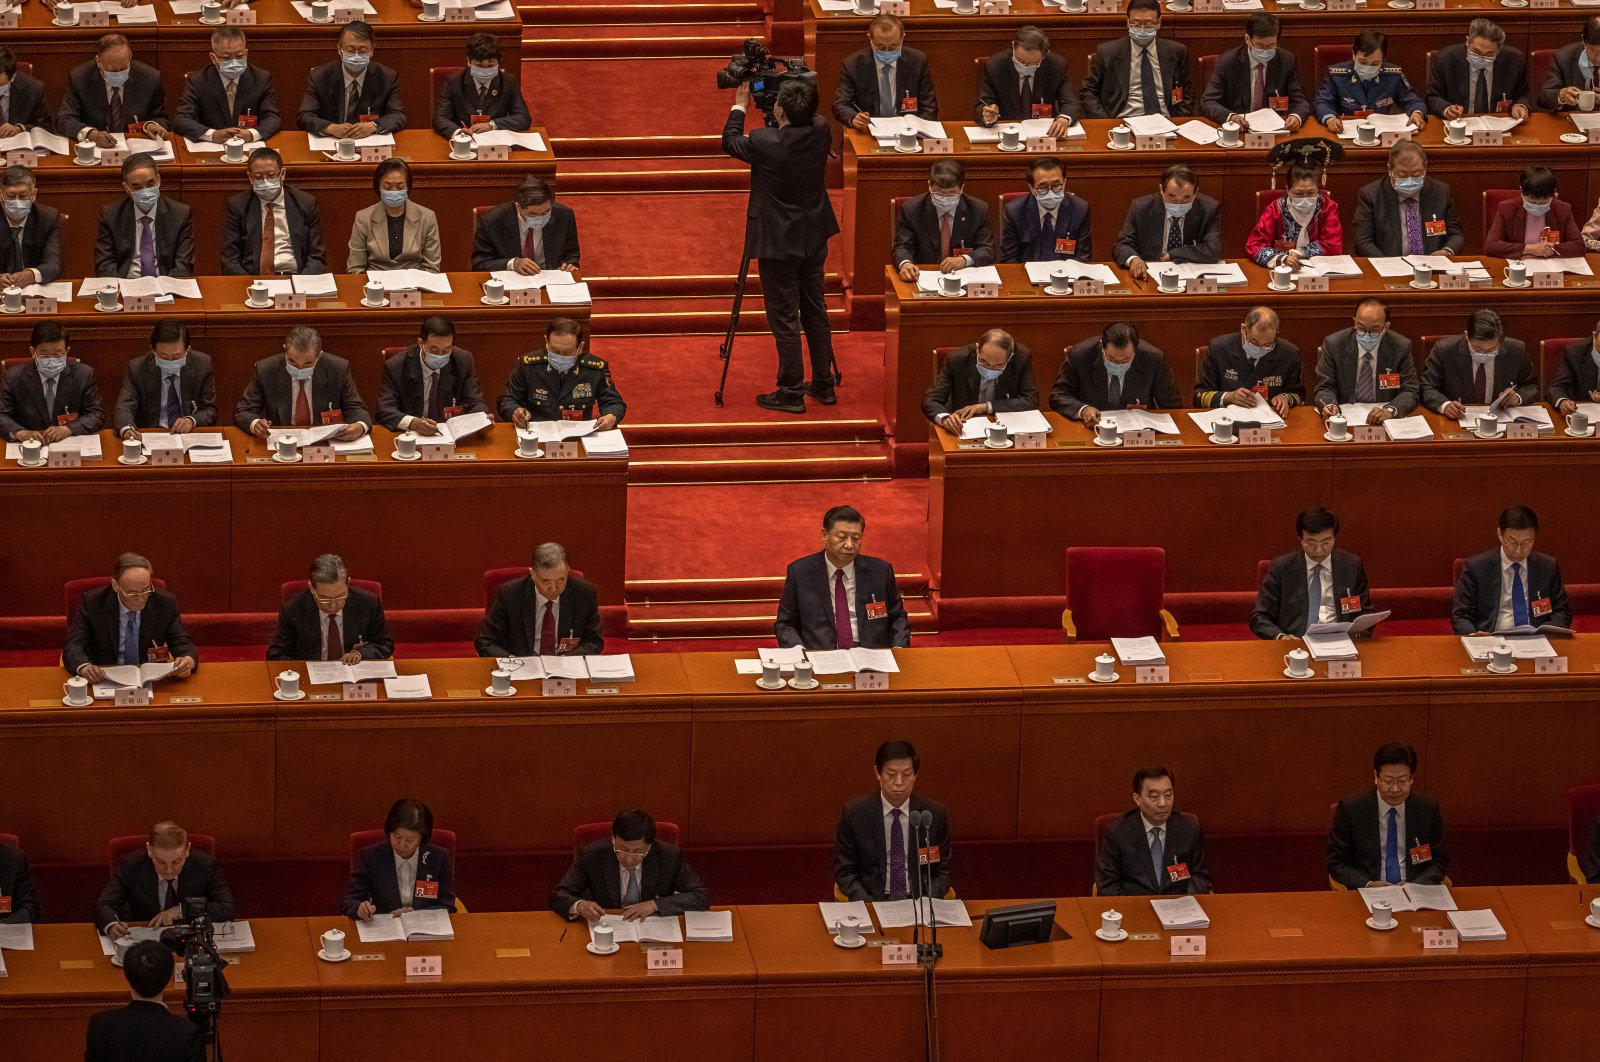 Chinese President Xi Jinping (C) with other delegates listen to a speech by Premier Li Keqiang (not pictured) during the opening session of the National People's Congress (NPC) at the Great Hall of the People, in Beijing, China, March 5, 2021.(EPA-EFE Photo)